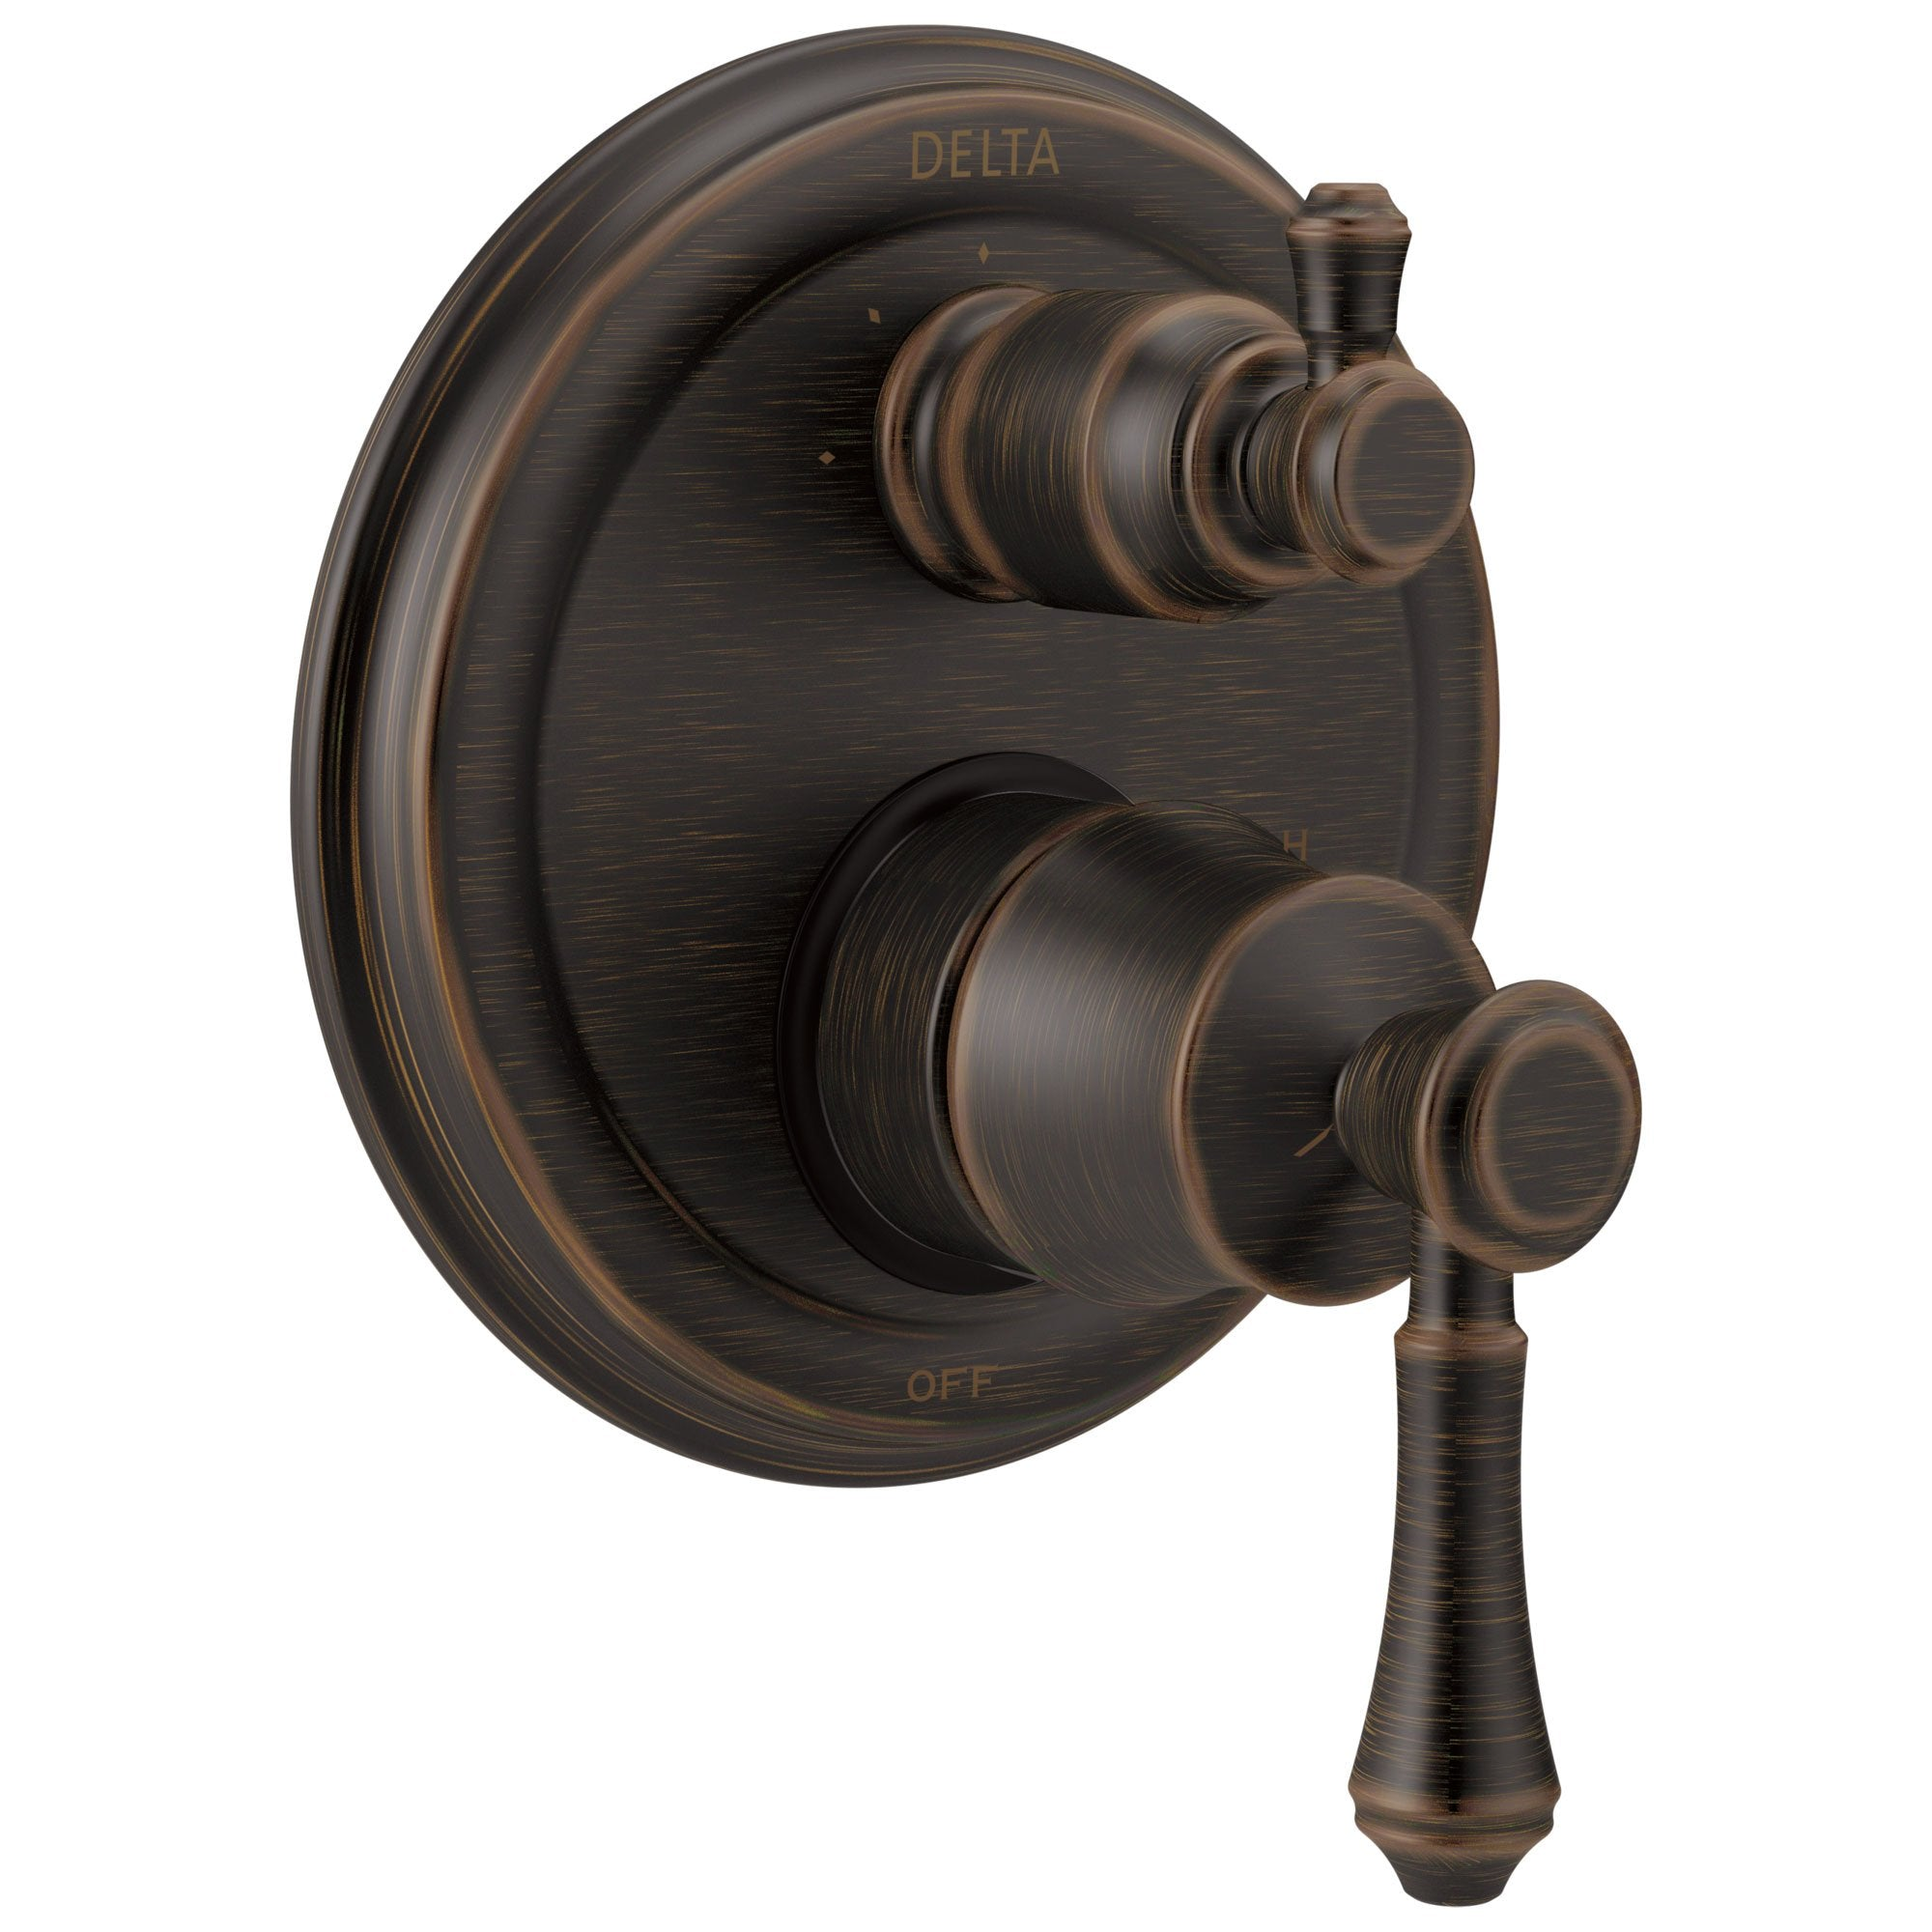 Delta Cassidy Venetian Bronze Shower Faucet Valve Trim Control Handle with 3-Setting Integrated Diverter Includes Trim Kit and Rough-in Valve with Stops D2205V